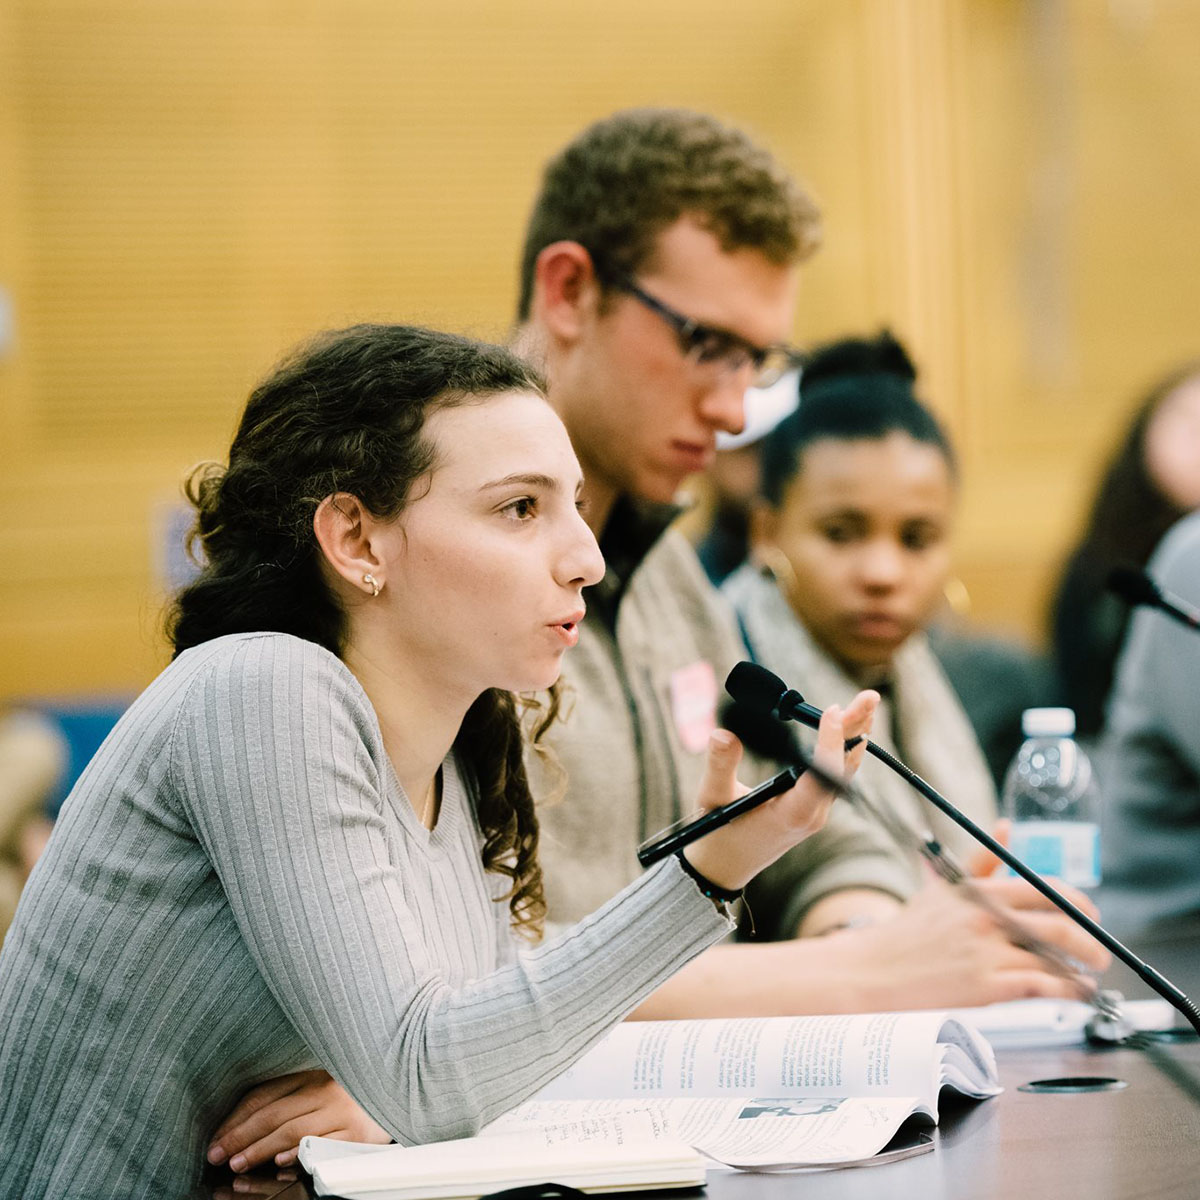 A Hillel student speaks into a microphone at a conference